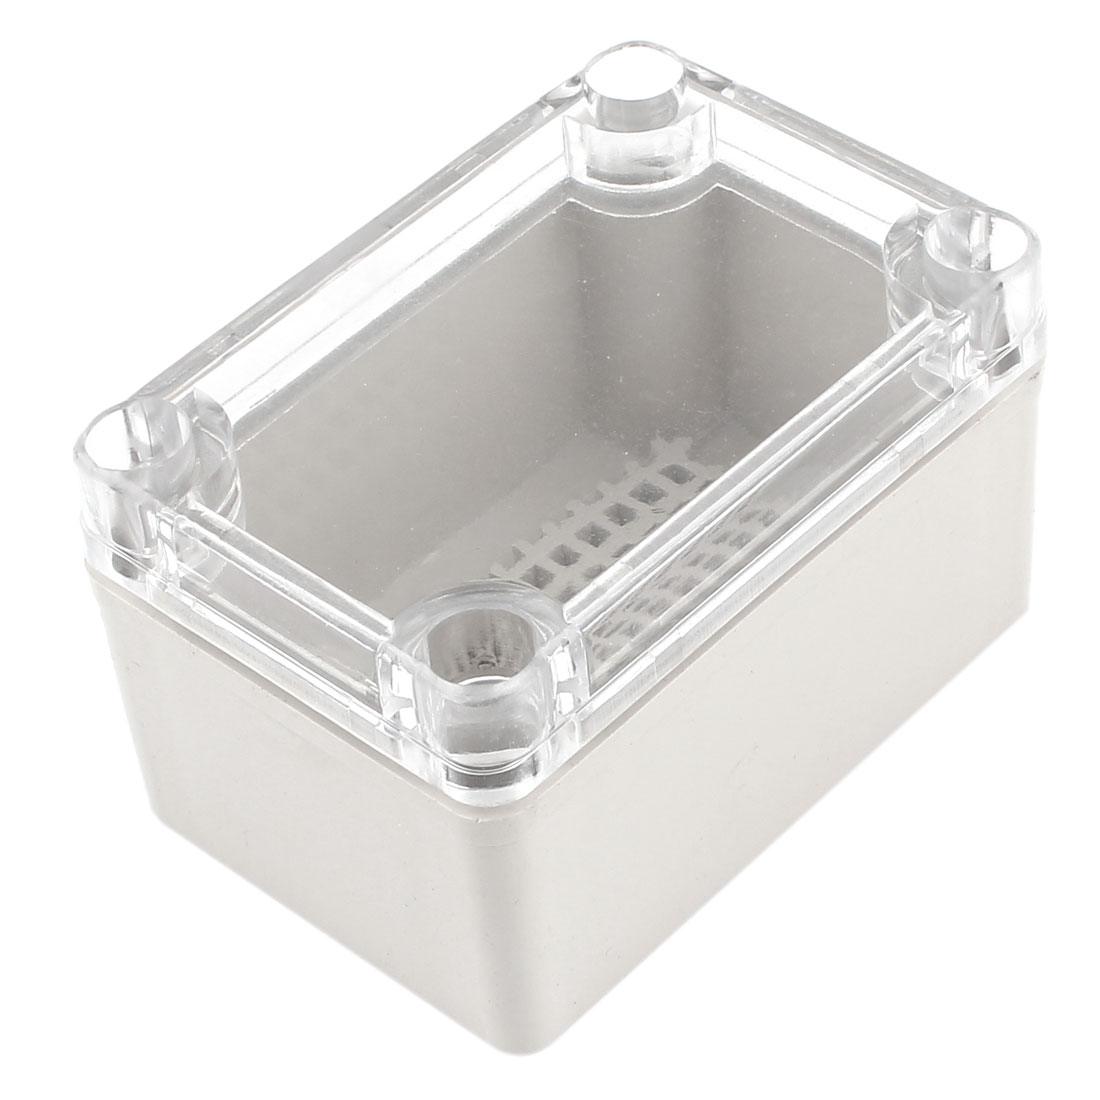 95mm x 65mm x 55mm Waterproof Plastic Sealed DIY Joint Electrical Junction Box